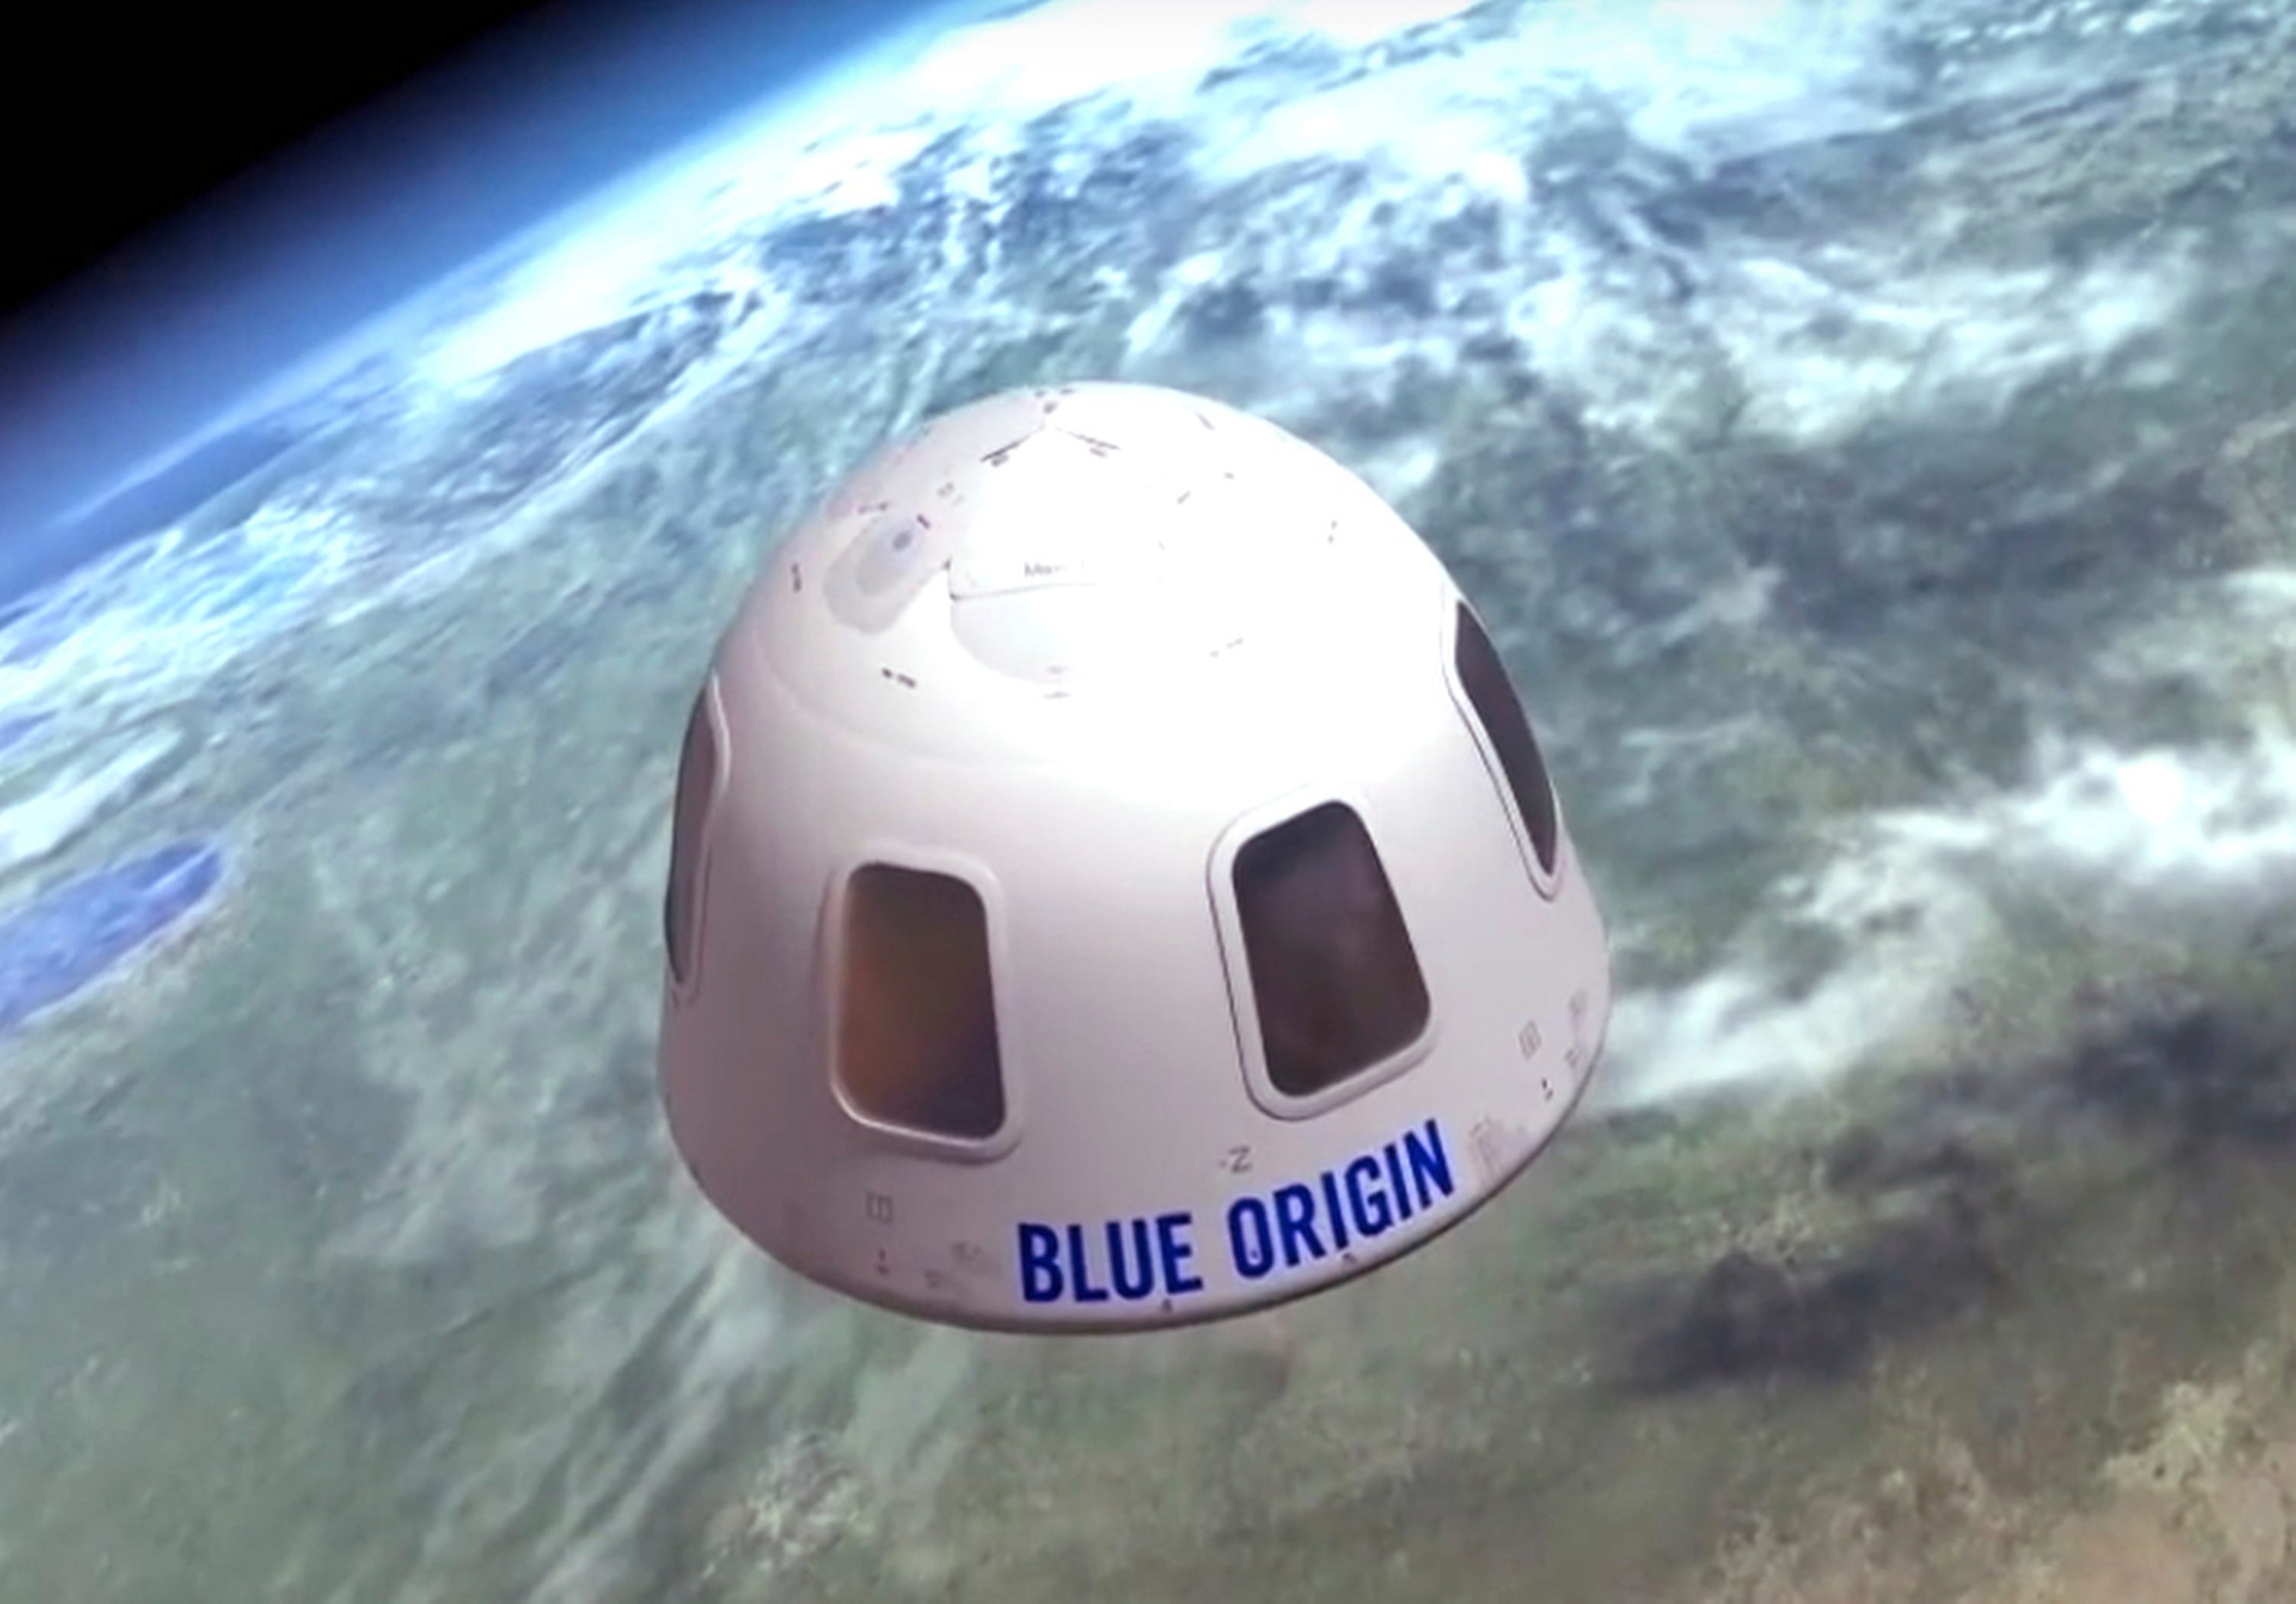 Blue Origin auctions seat for space flight with Jeff Bezos for $28M